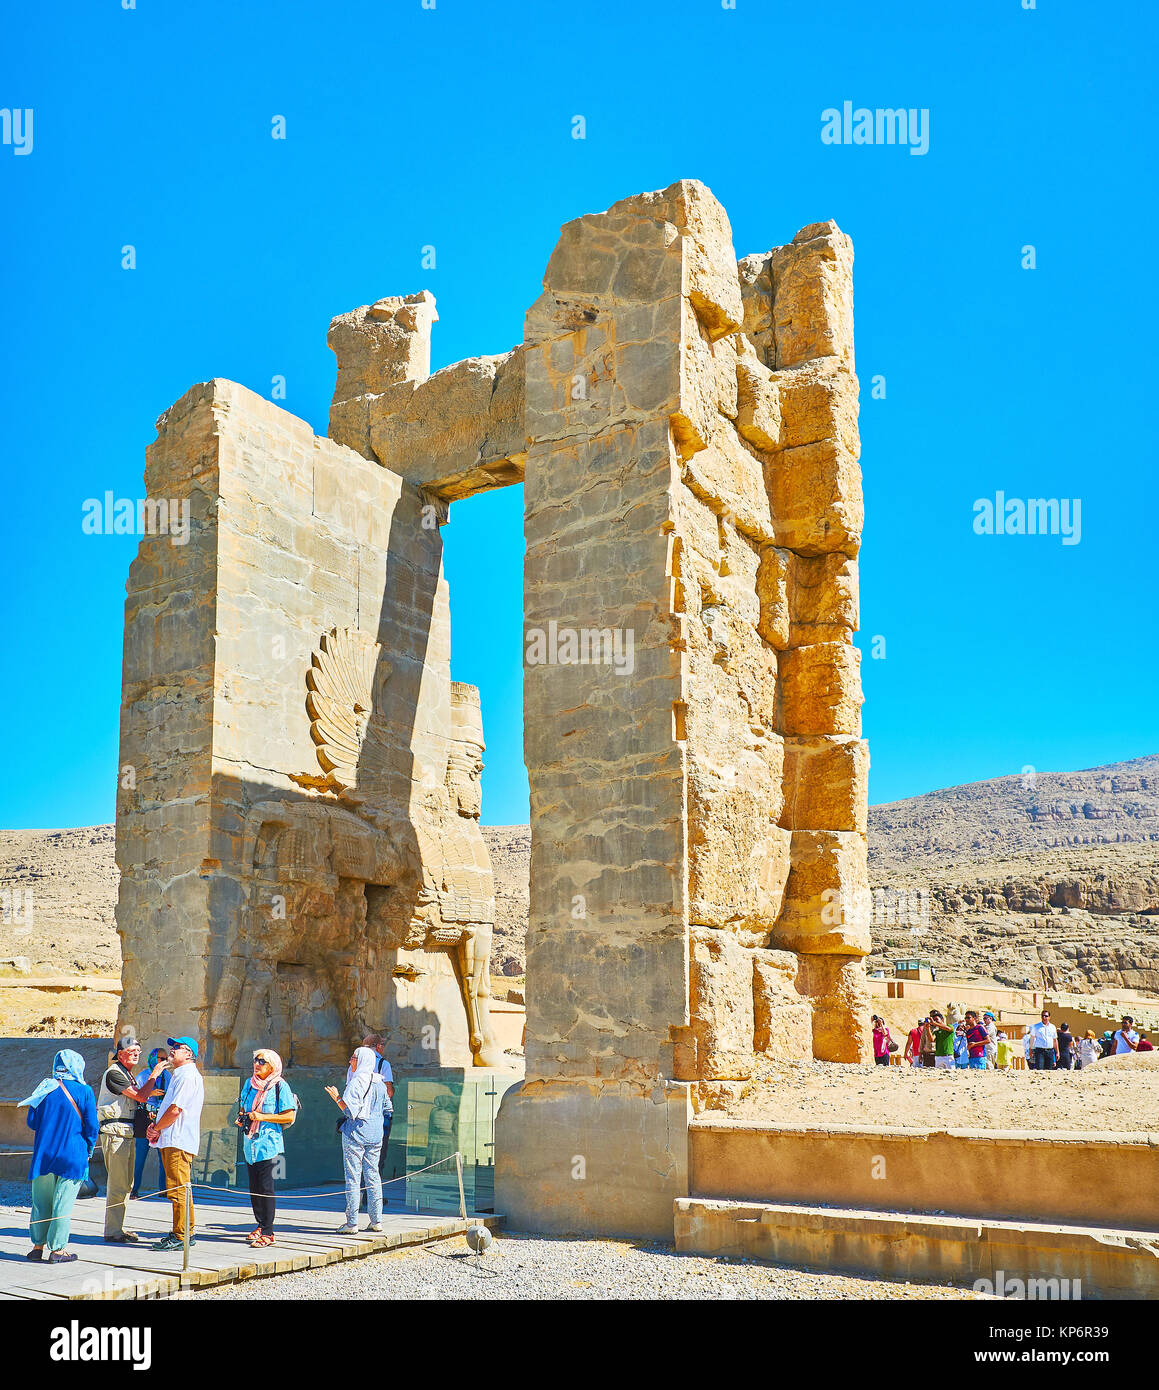 PERSEPOLIS, IRAN - OCTOBER 13, 2017: The All Nations Gate (Xerxes Gate) in Persepolis archaeological site is one Stock Photo